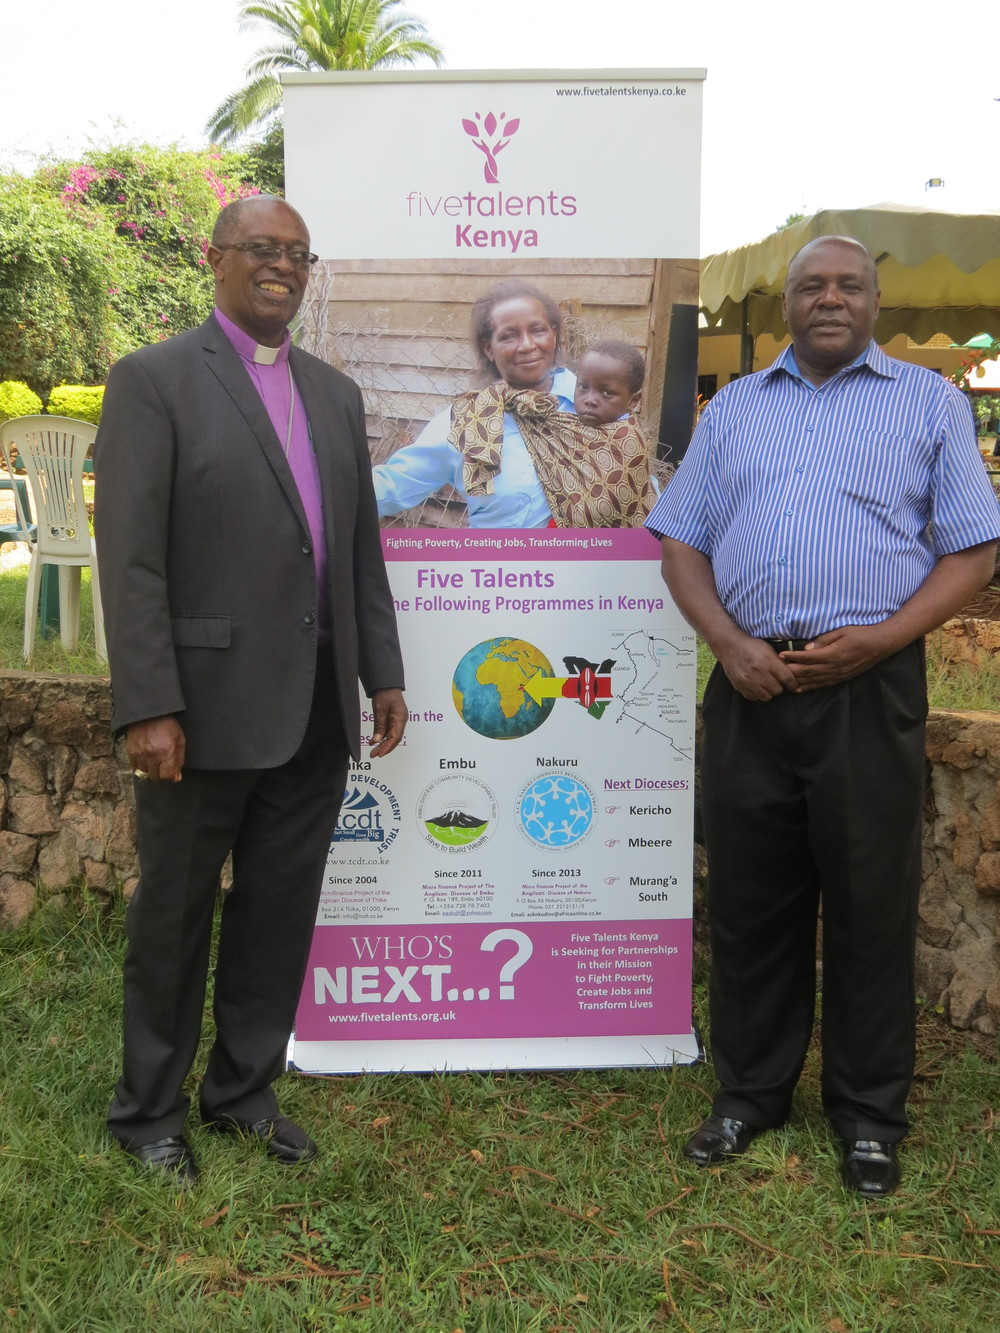 Bishop Gideon & Peterson Karanja